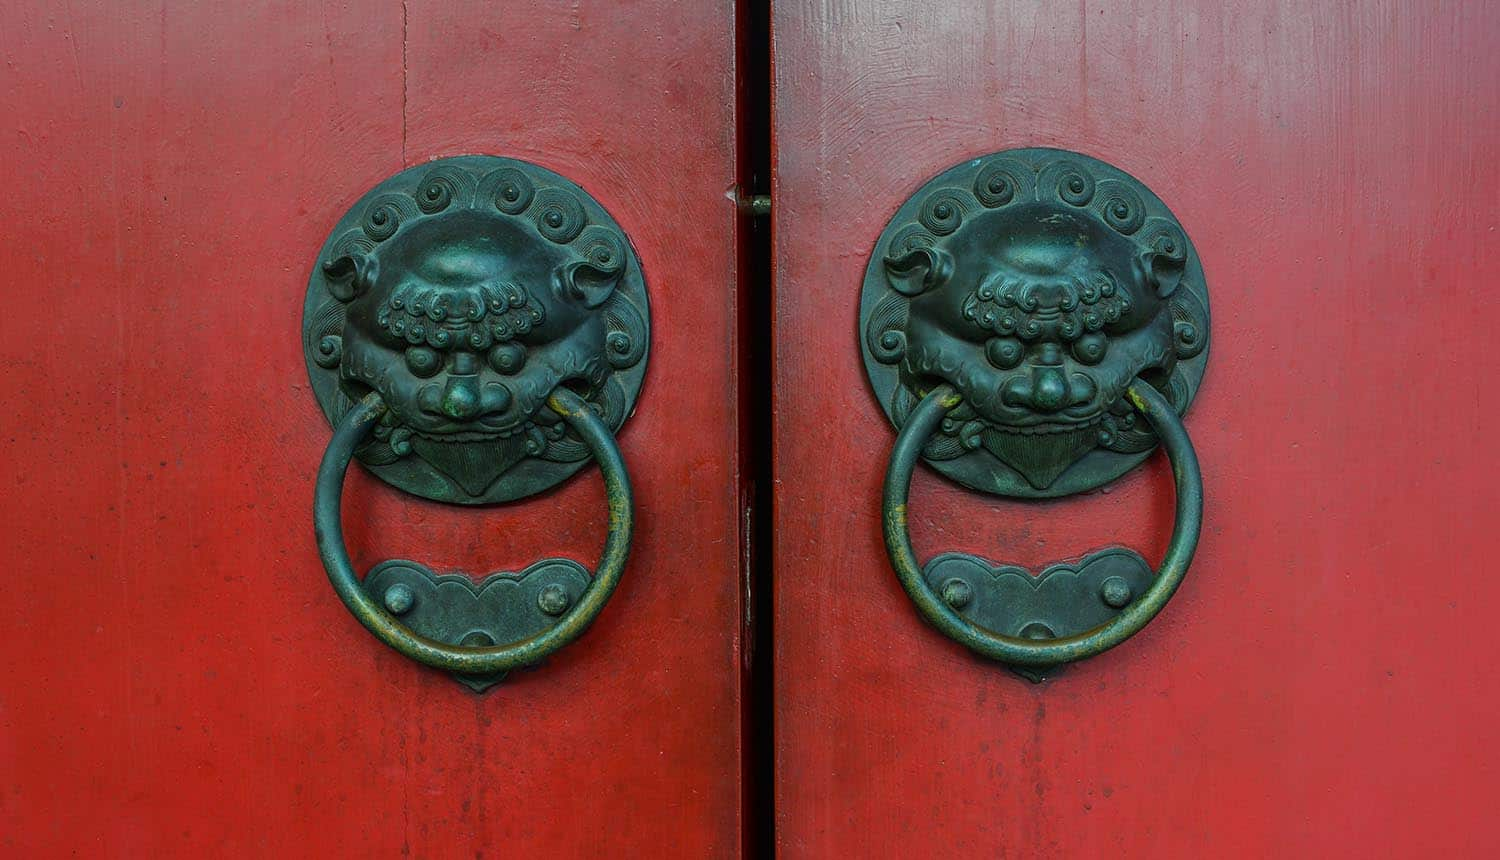 Old bronze knocker with red door in Chinese temple showing national security risks of Chinese tech companies